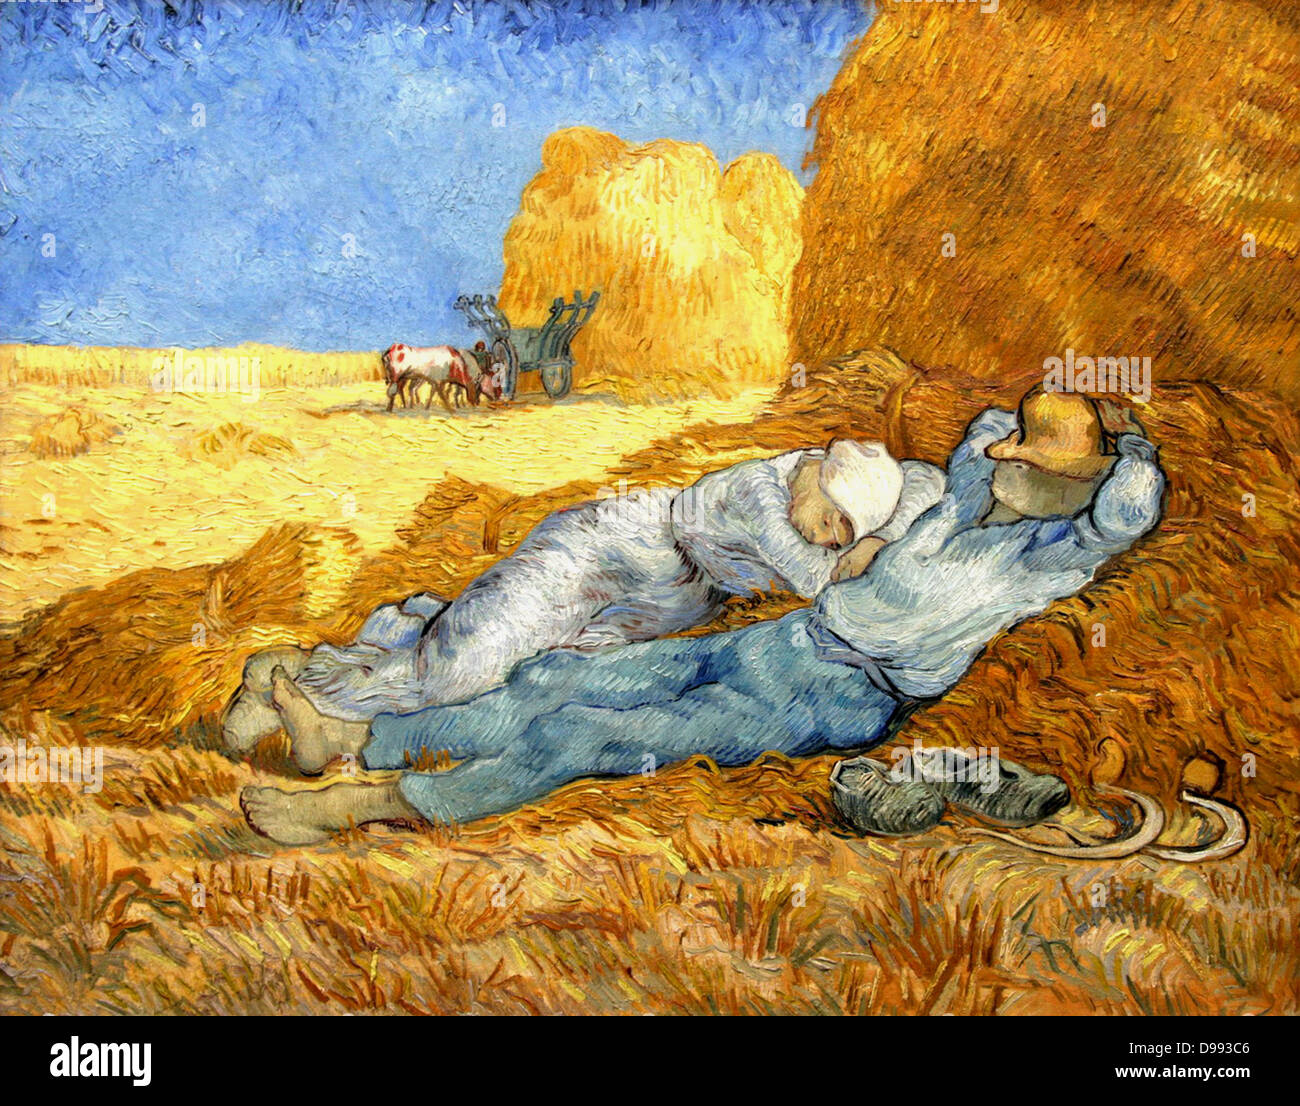 an autobiography of vincent van gogh a dutch artist and post impressionist painter The vincent van gogh  had a tremendous influence on vincent's later career as an artist vincent was  holding him and speaking with him in dutch vincent.